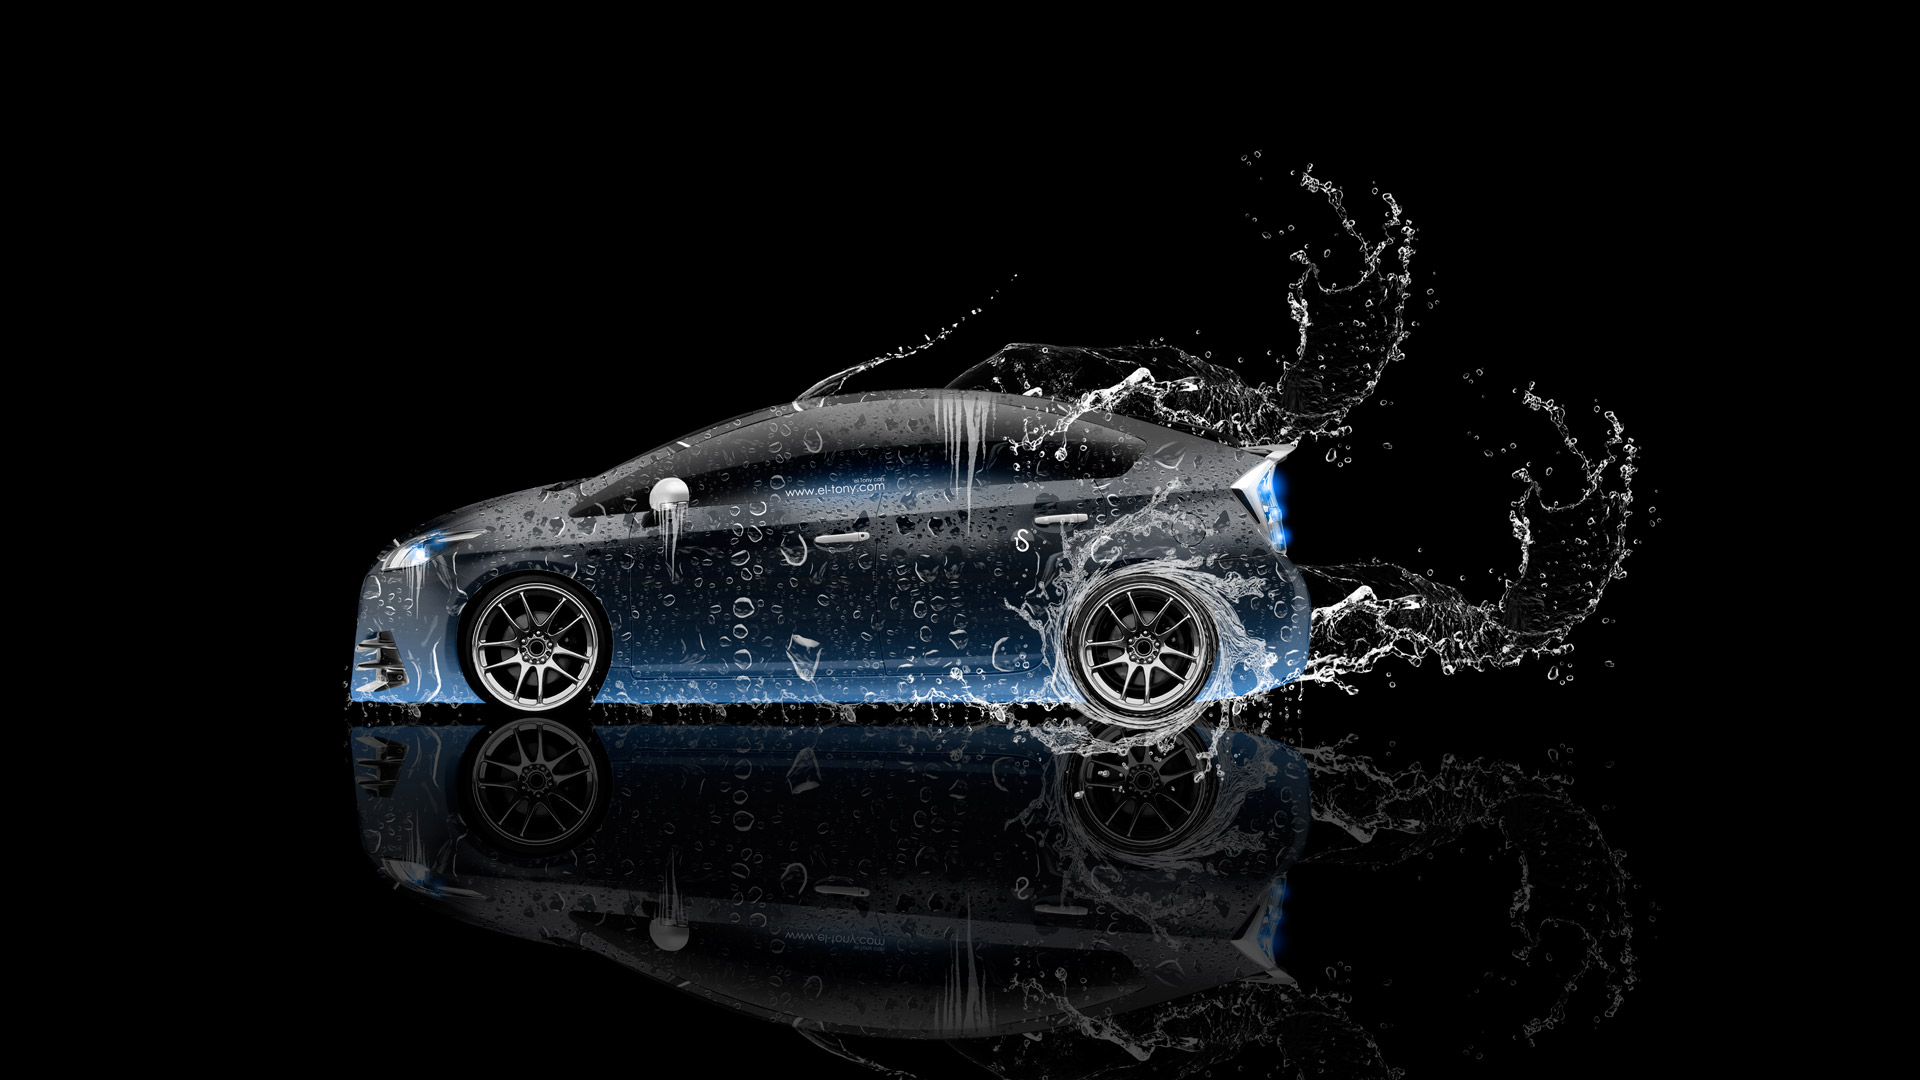 Toyota Prius Hybrid Side Water Car Blue Neon Hd Wallpapers Design By Tony Kokhan Www El Tony Com